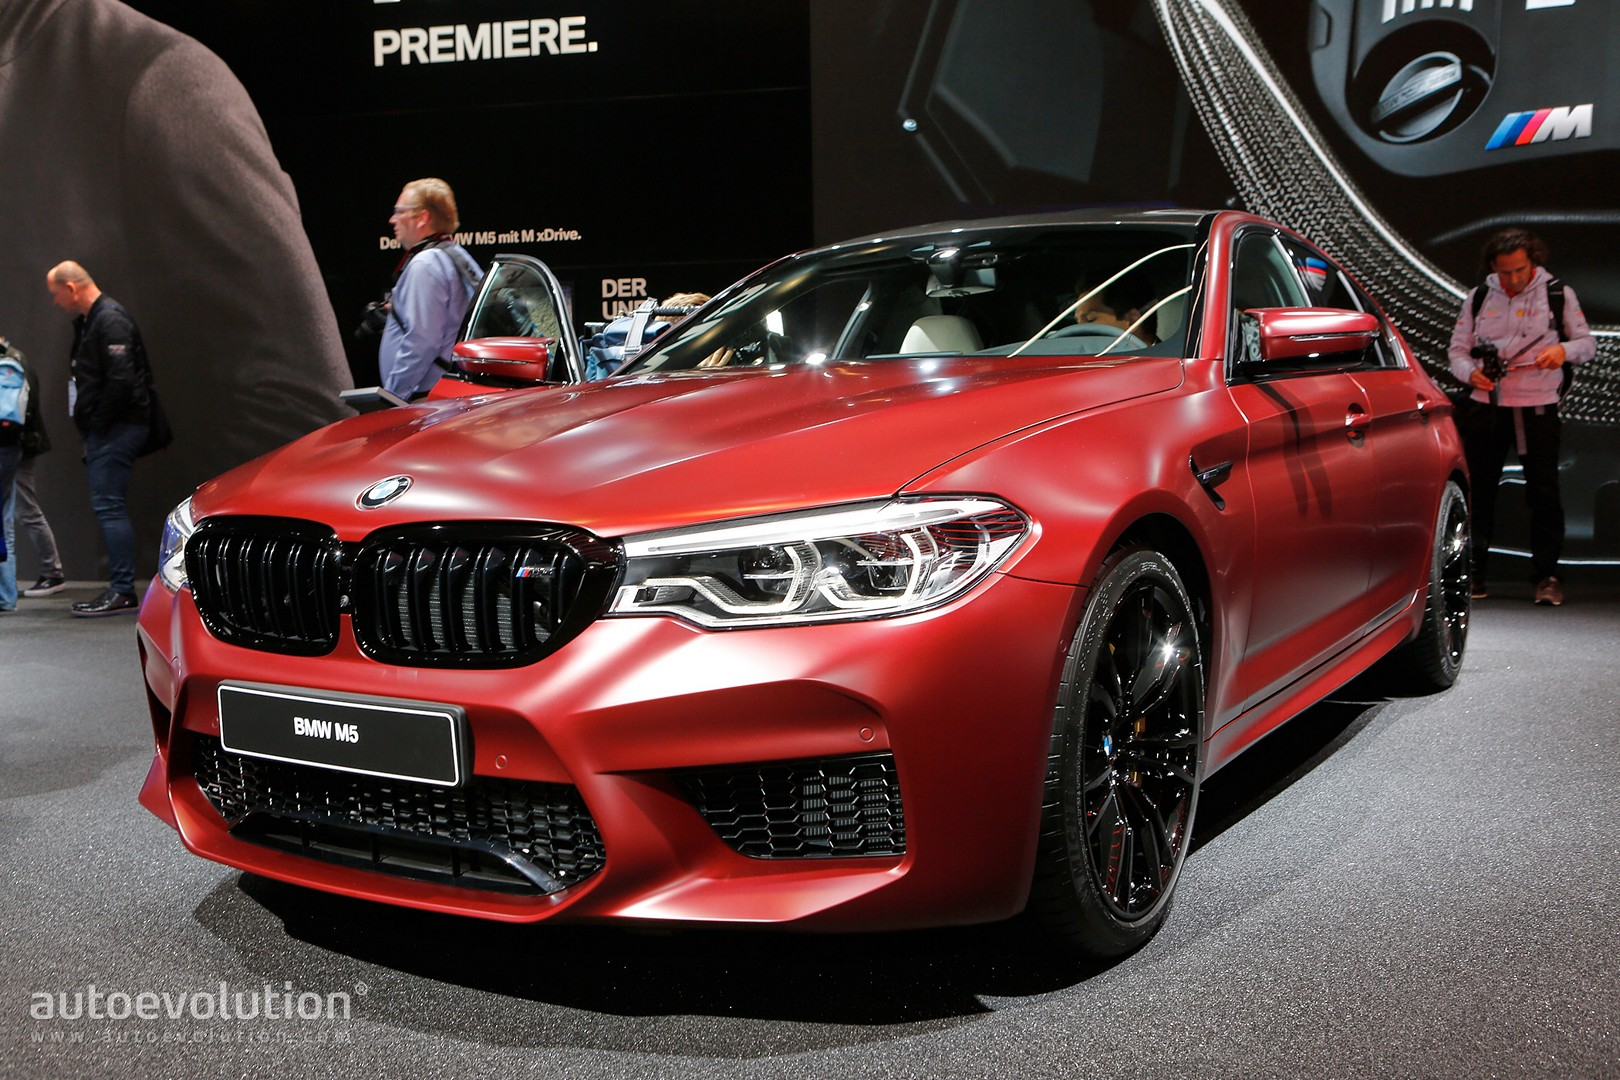 2018 bmw m5 flaunts 600 hp awd and frozen red paint autoevolution. Black Bedroom Furniture Sets. Home Design Ideas